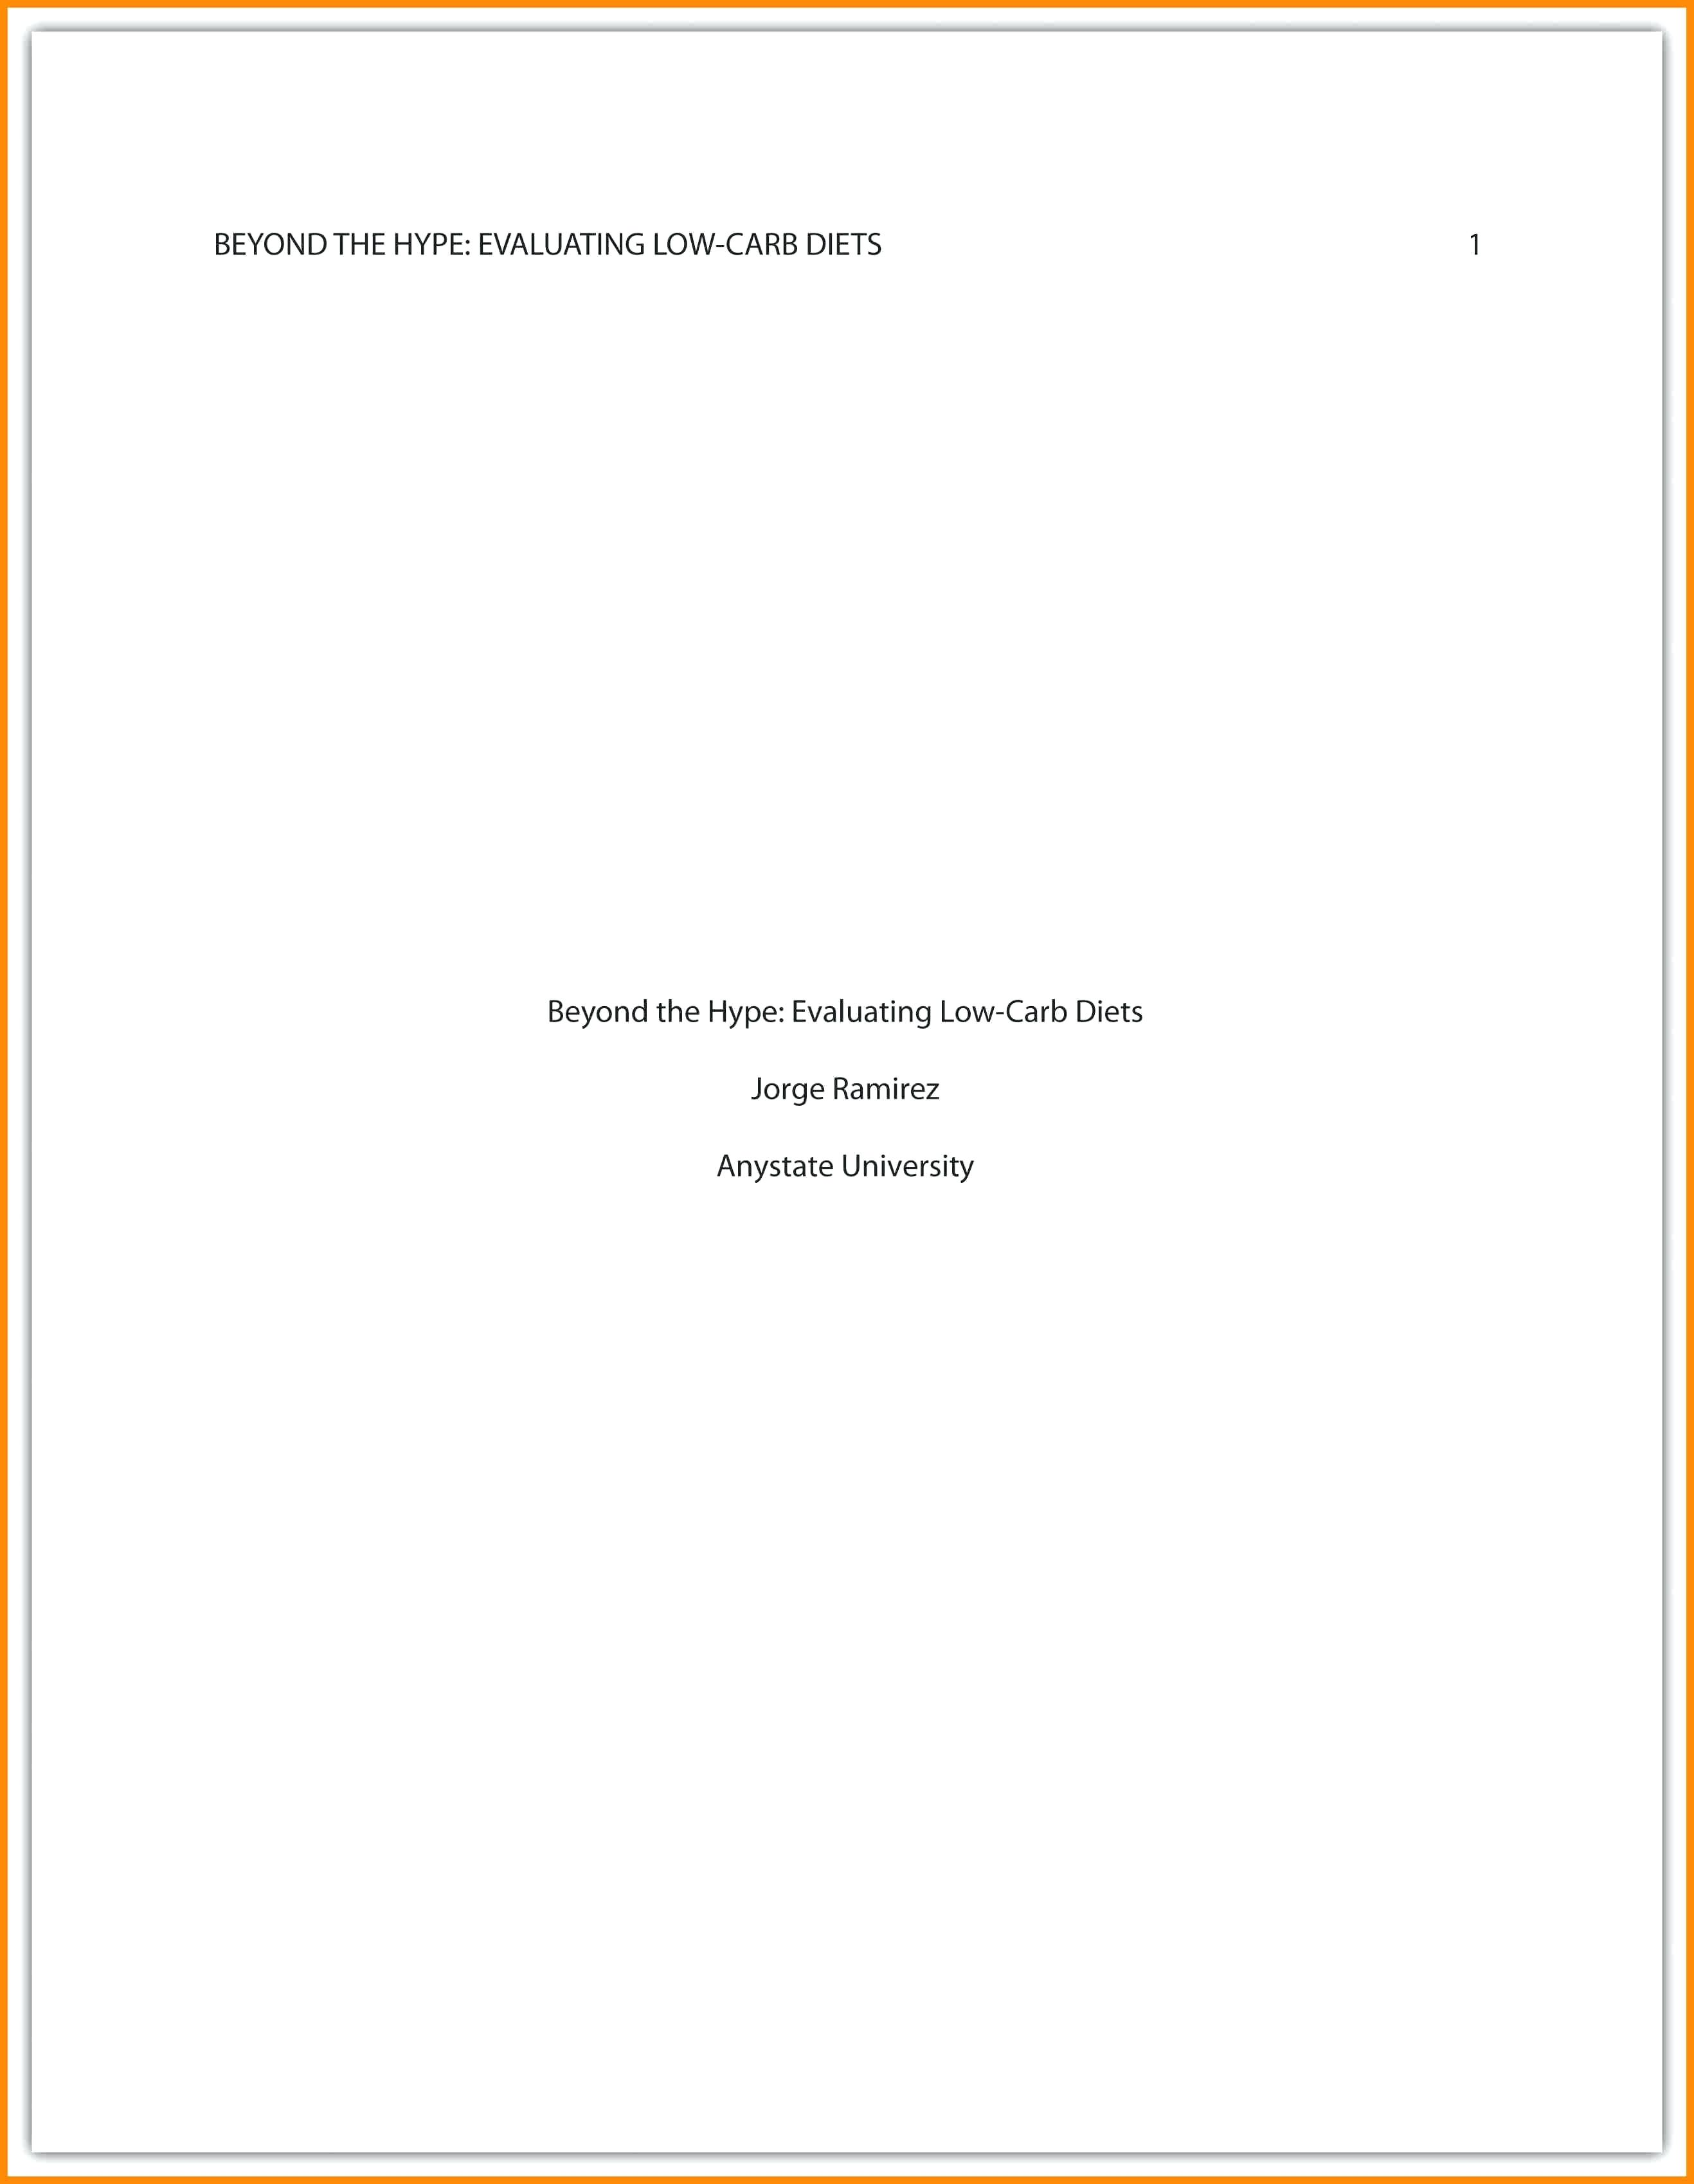 002 Asa Cover Page Template Style Essay Marvelous Example Apa Research Proposal Sample Full